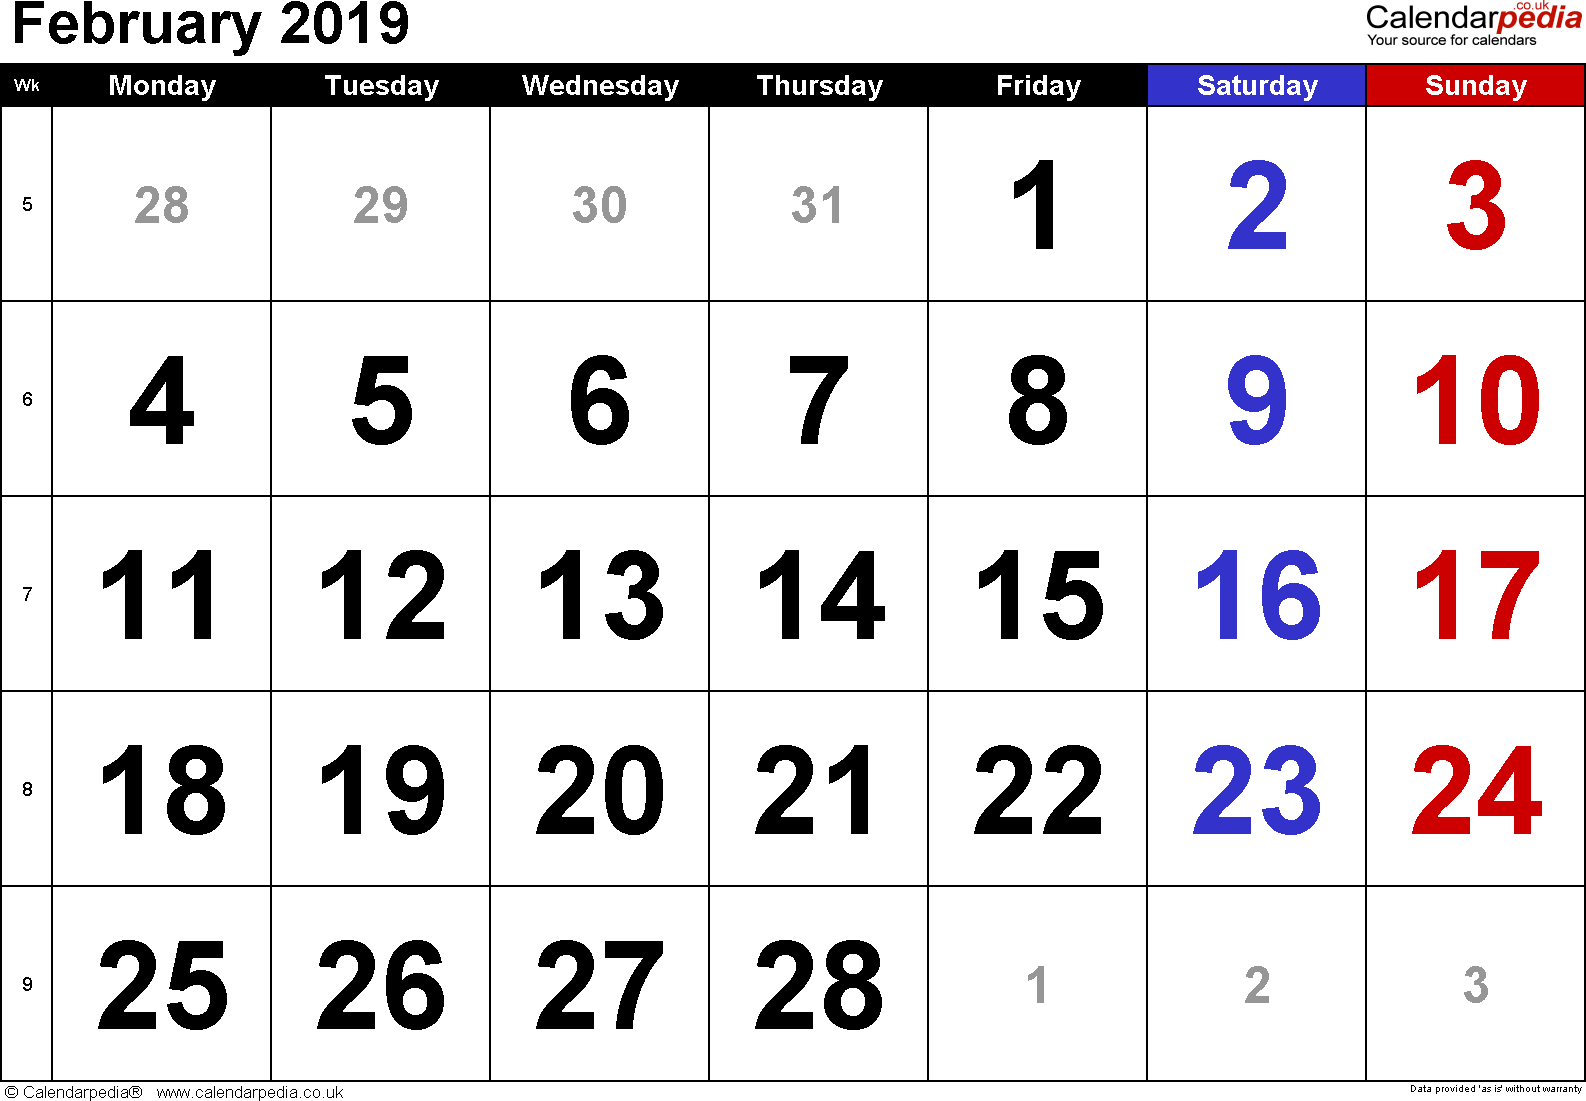 February 2019 Calendar Showing Only Fridays Calendar February 2019 UK, Bank Holidays, Excel/PDF/Word Templates